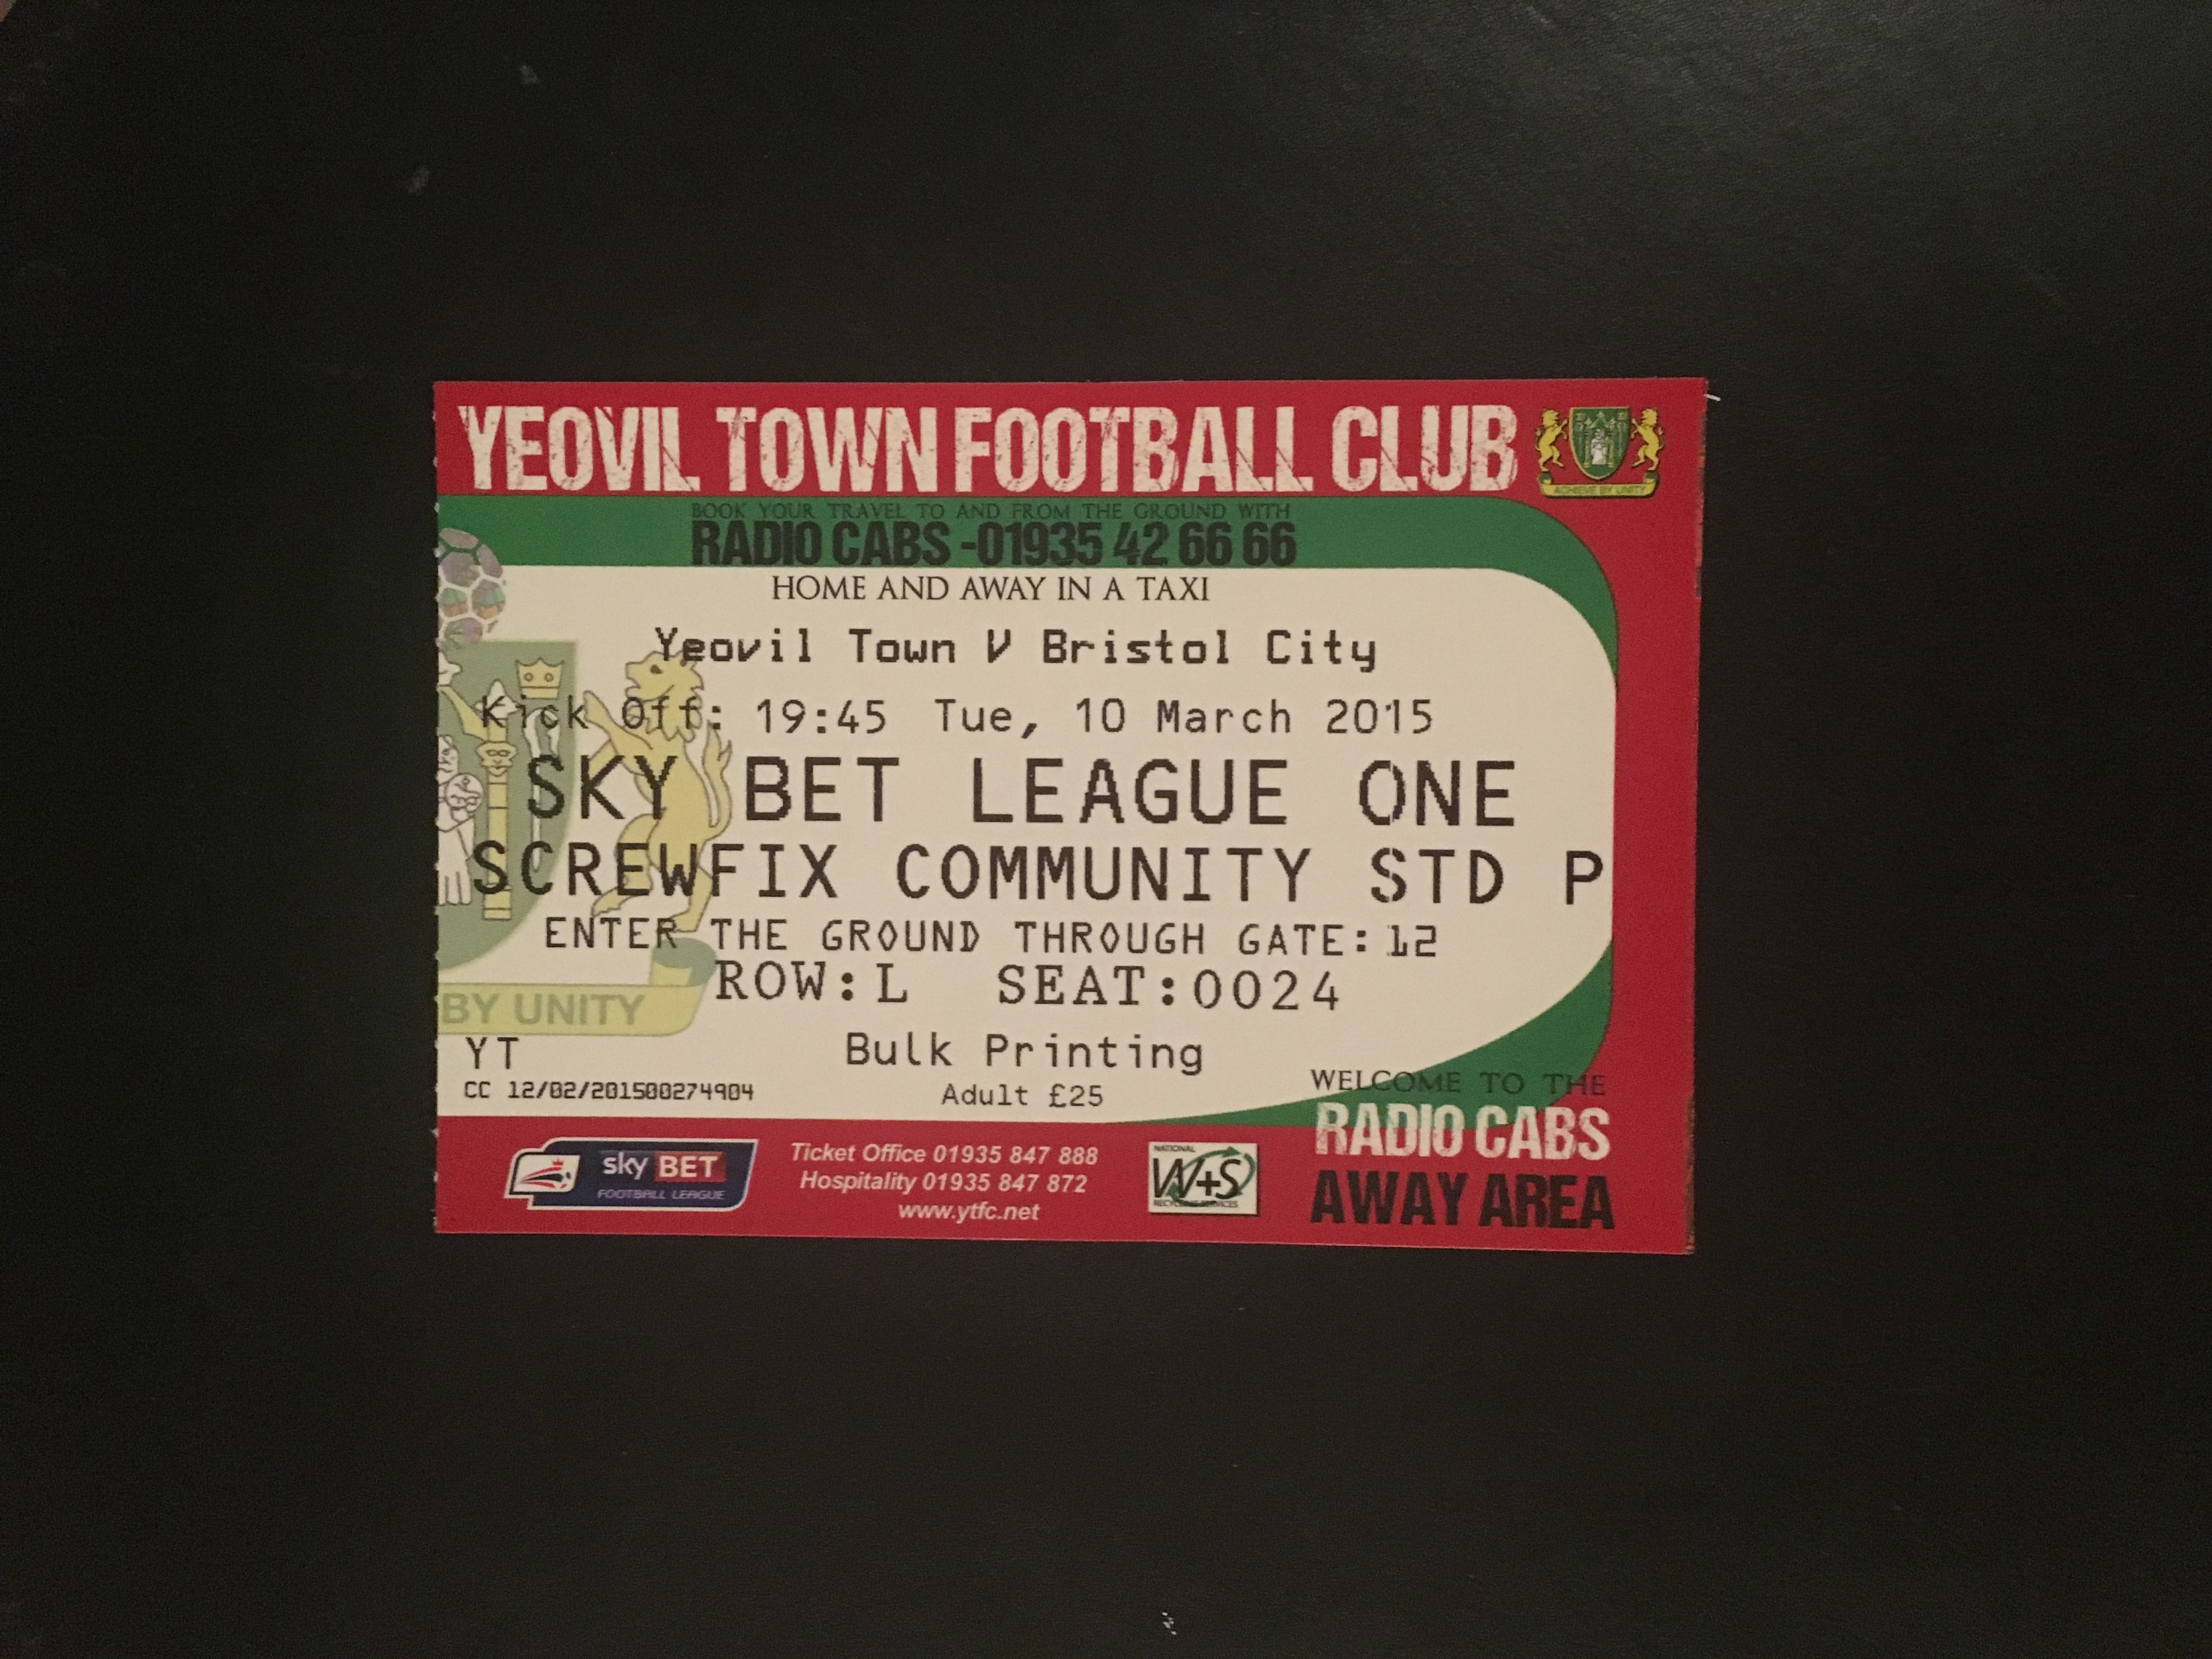 Yeovil Town v Bristol City 10-03-2015 Ticket